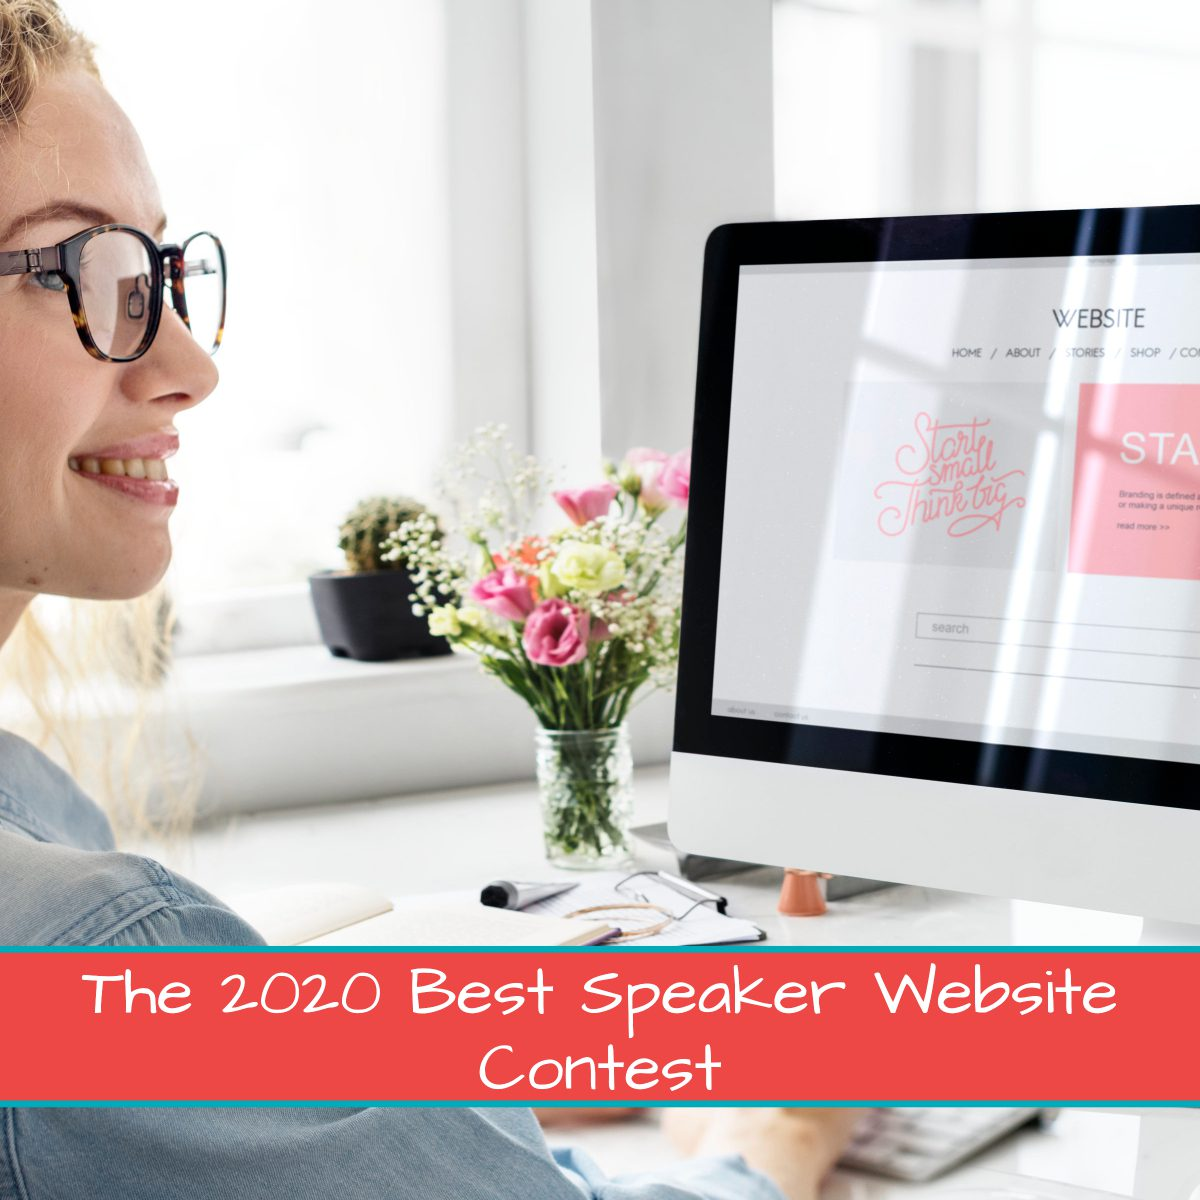 The 2020 Best Speaker Website Contest